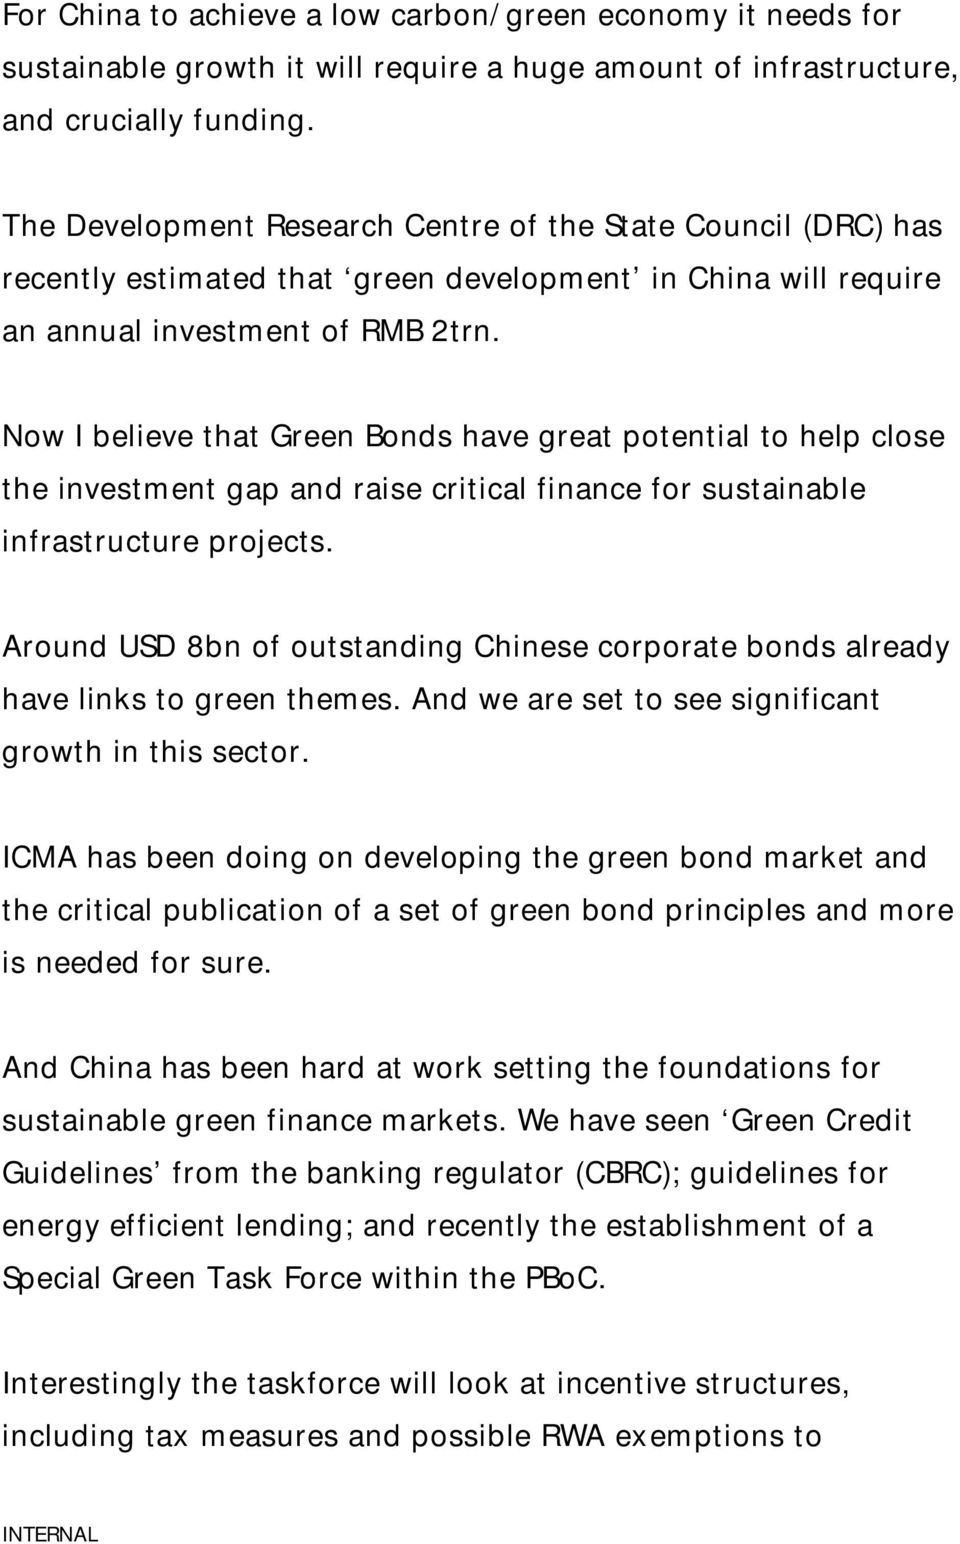 Now I believe that Green Bonds have great potential to help close the investment gap and raise critical finance for sustainable infrastructure projects.